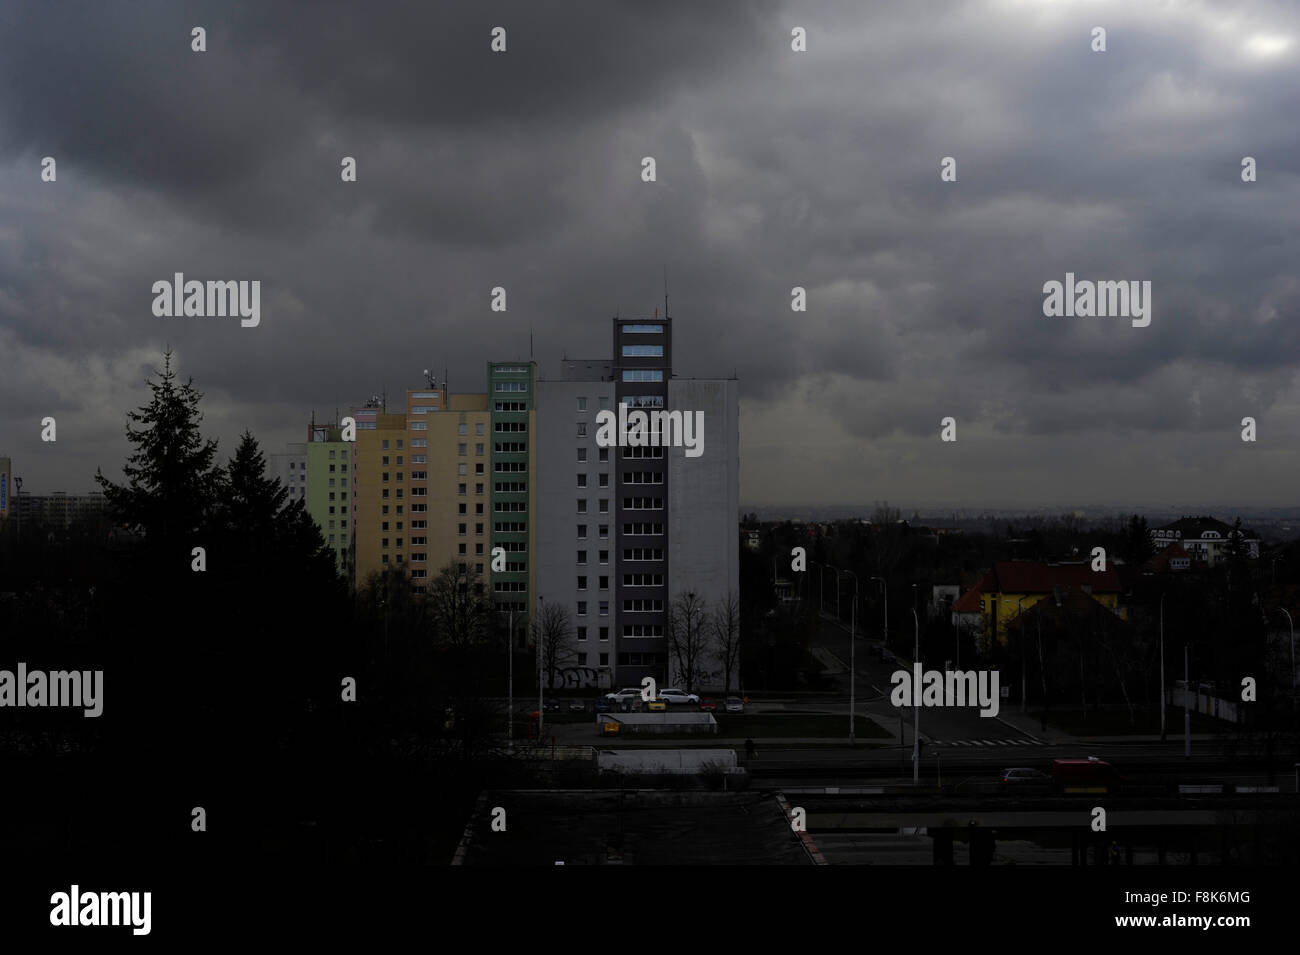 Ex Soviet Union USSR architecture, block buildings. Outskirts of Prague Czech Republic - Stock Image